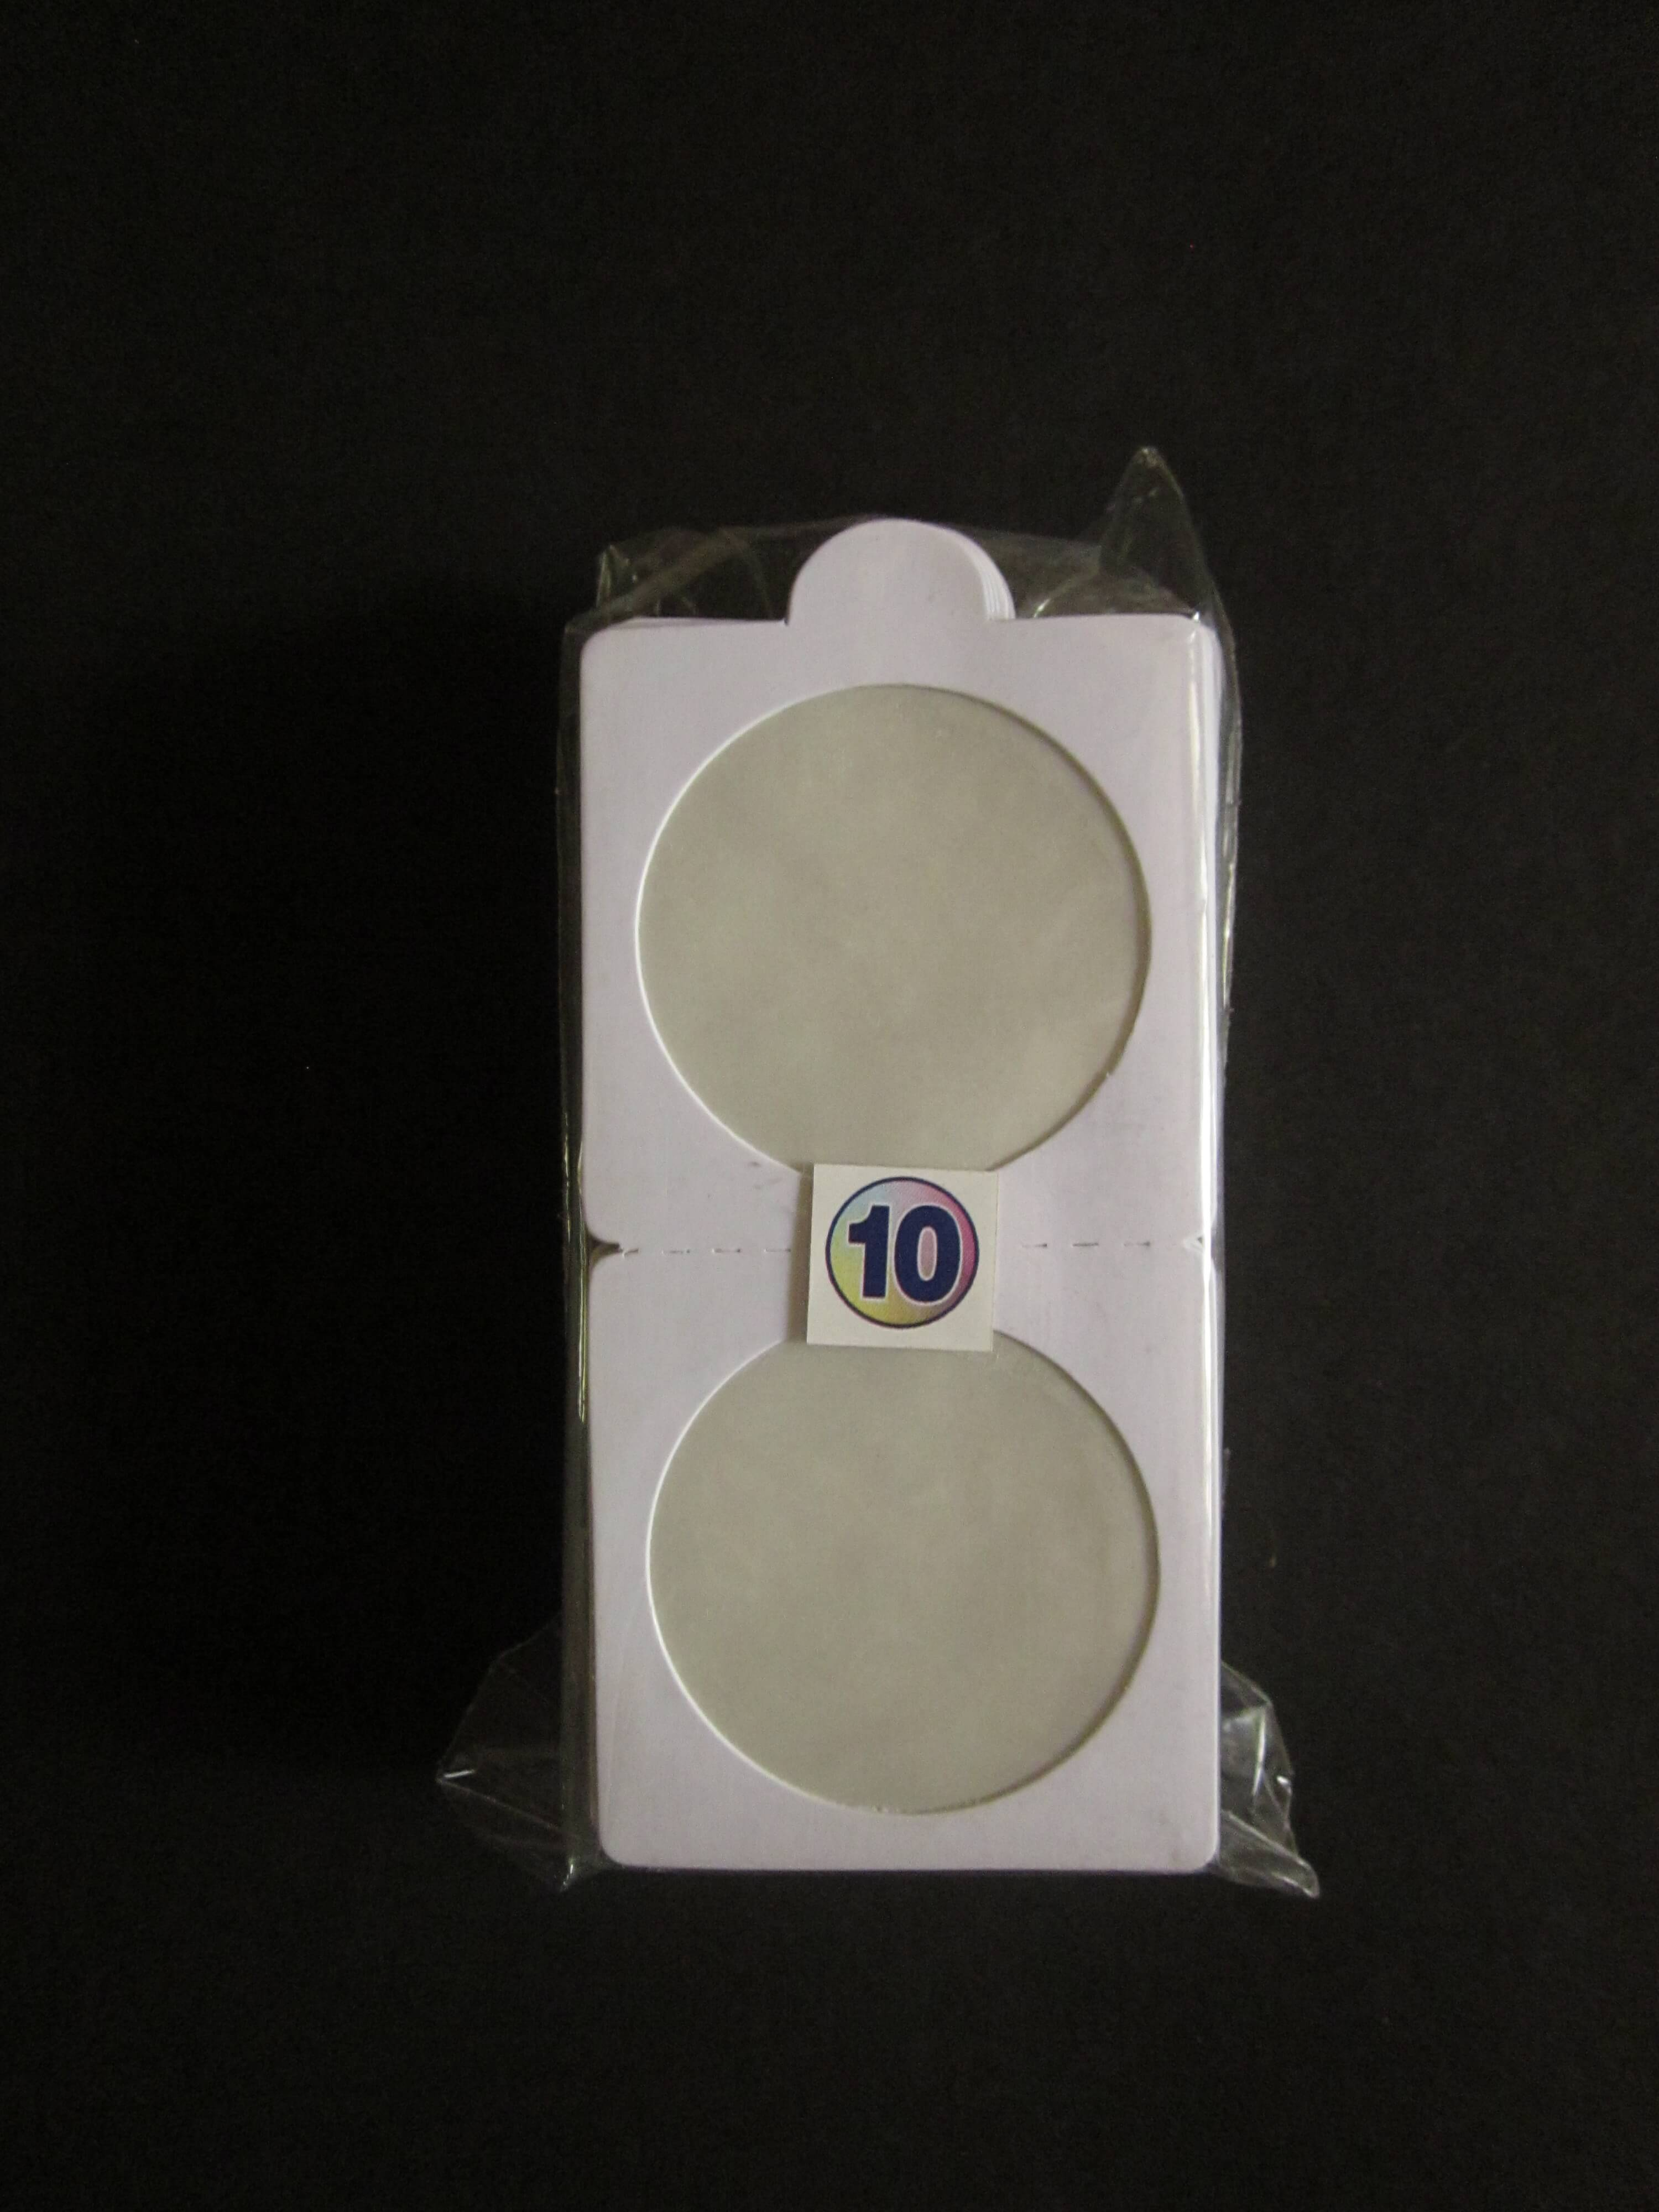 Adhesive_Coin_Holder_W(10)